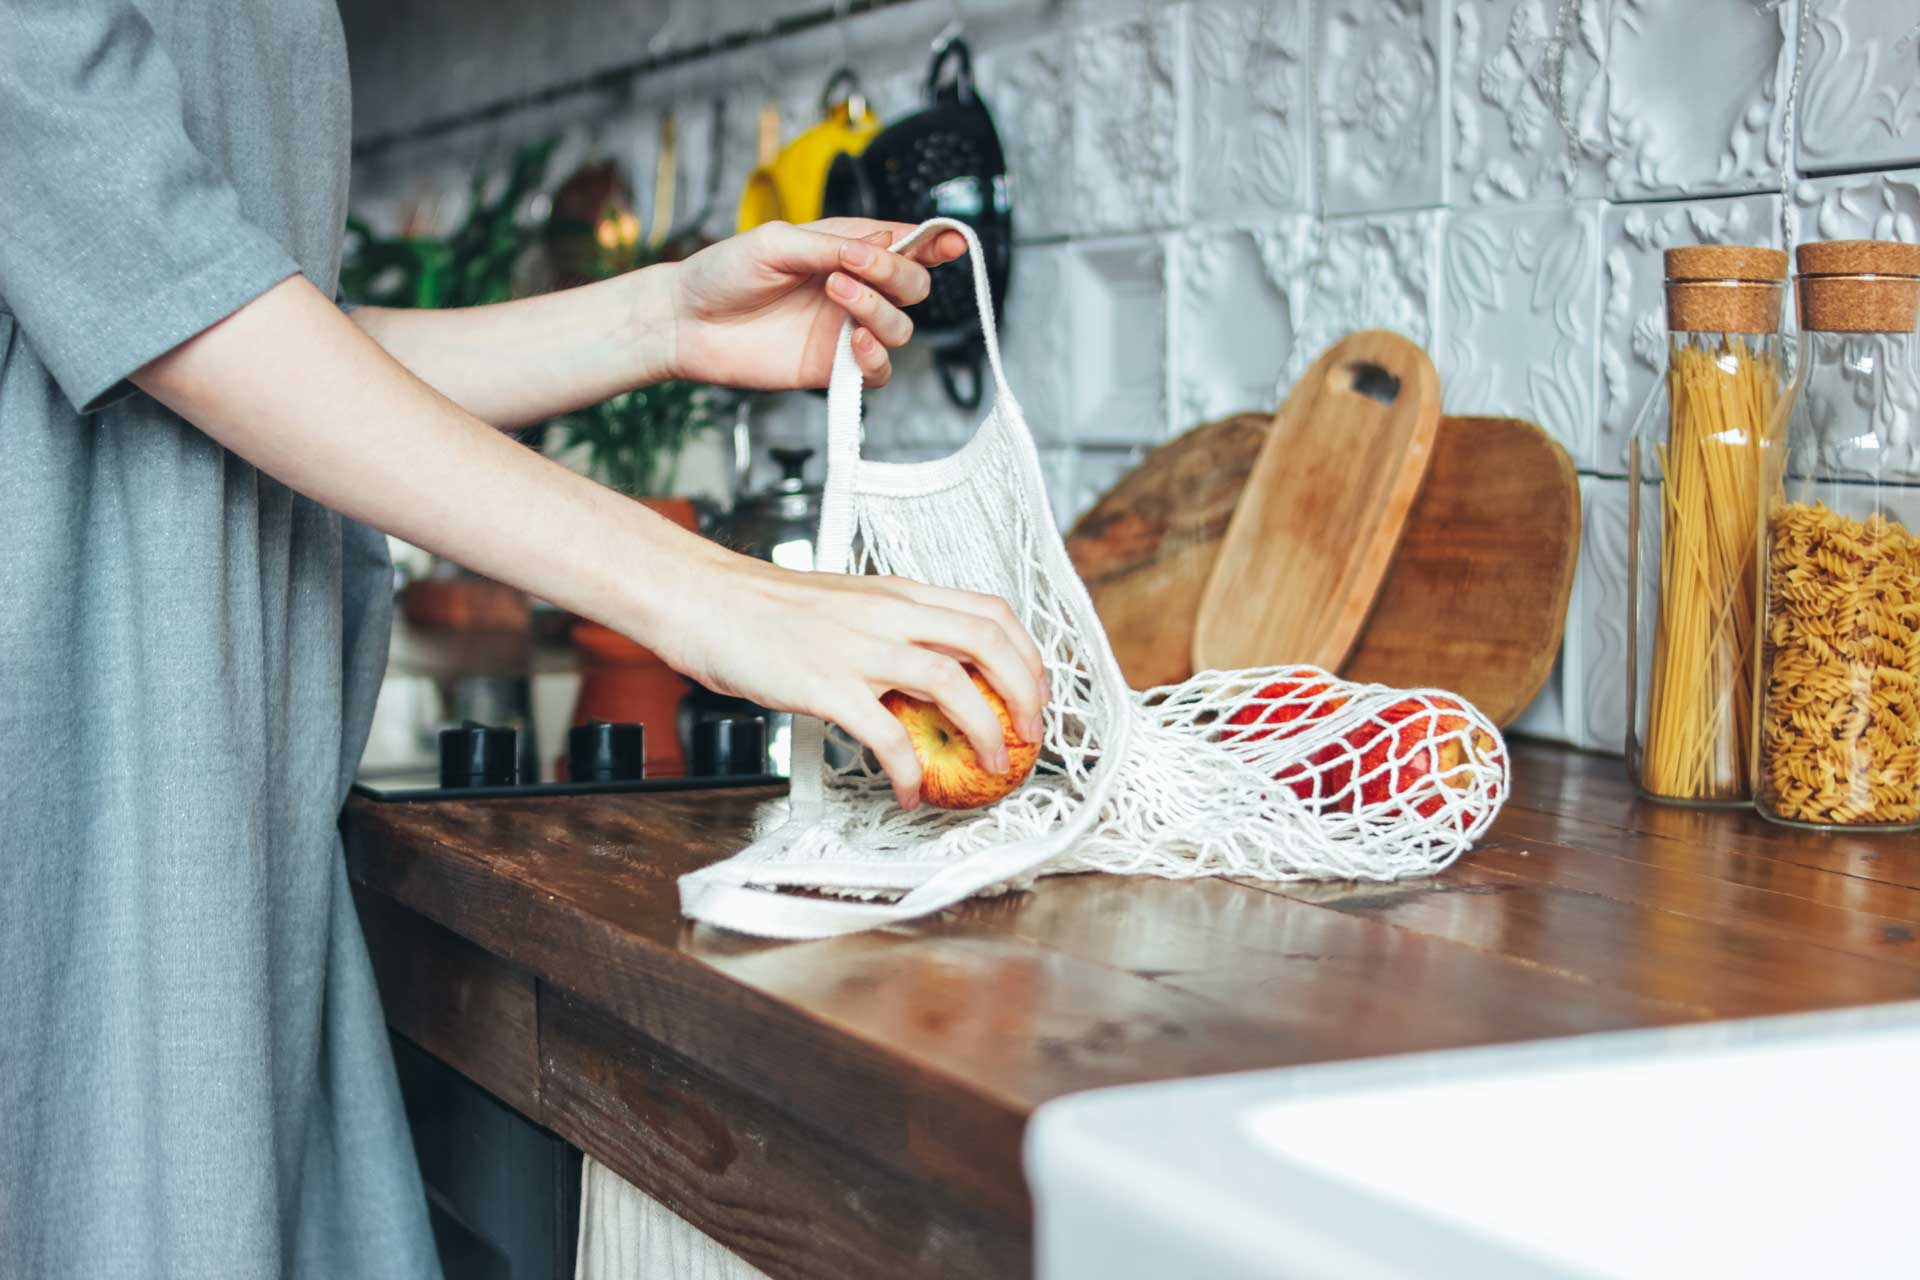 Woman in zero waste kitchen putting apples into mesh bag.